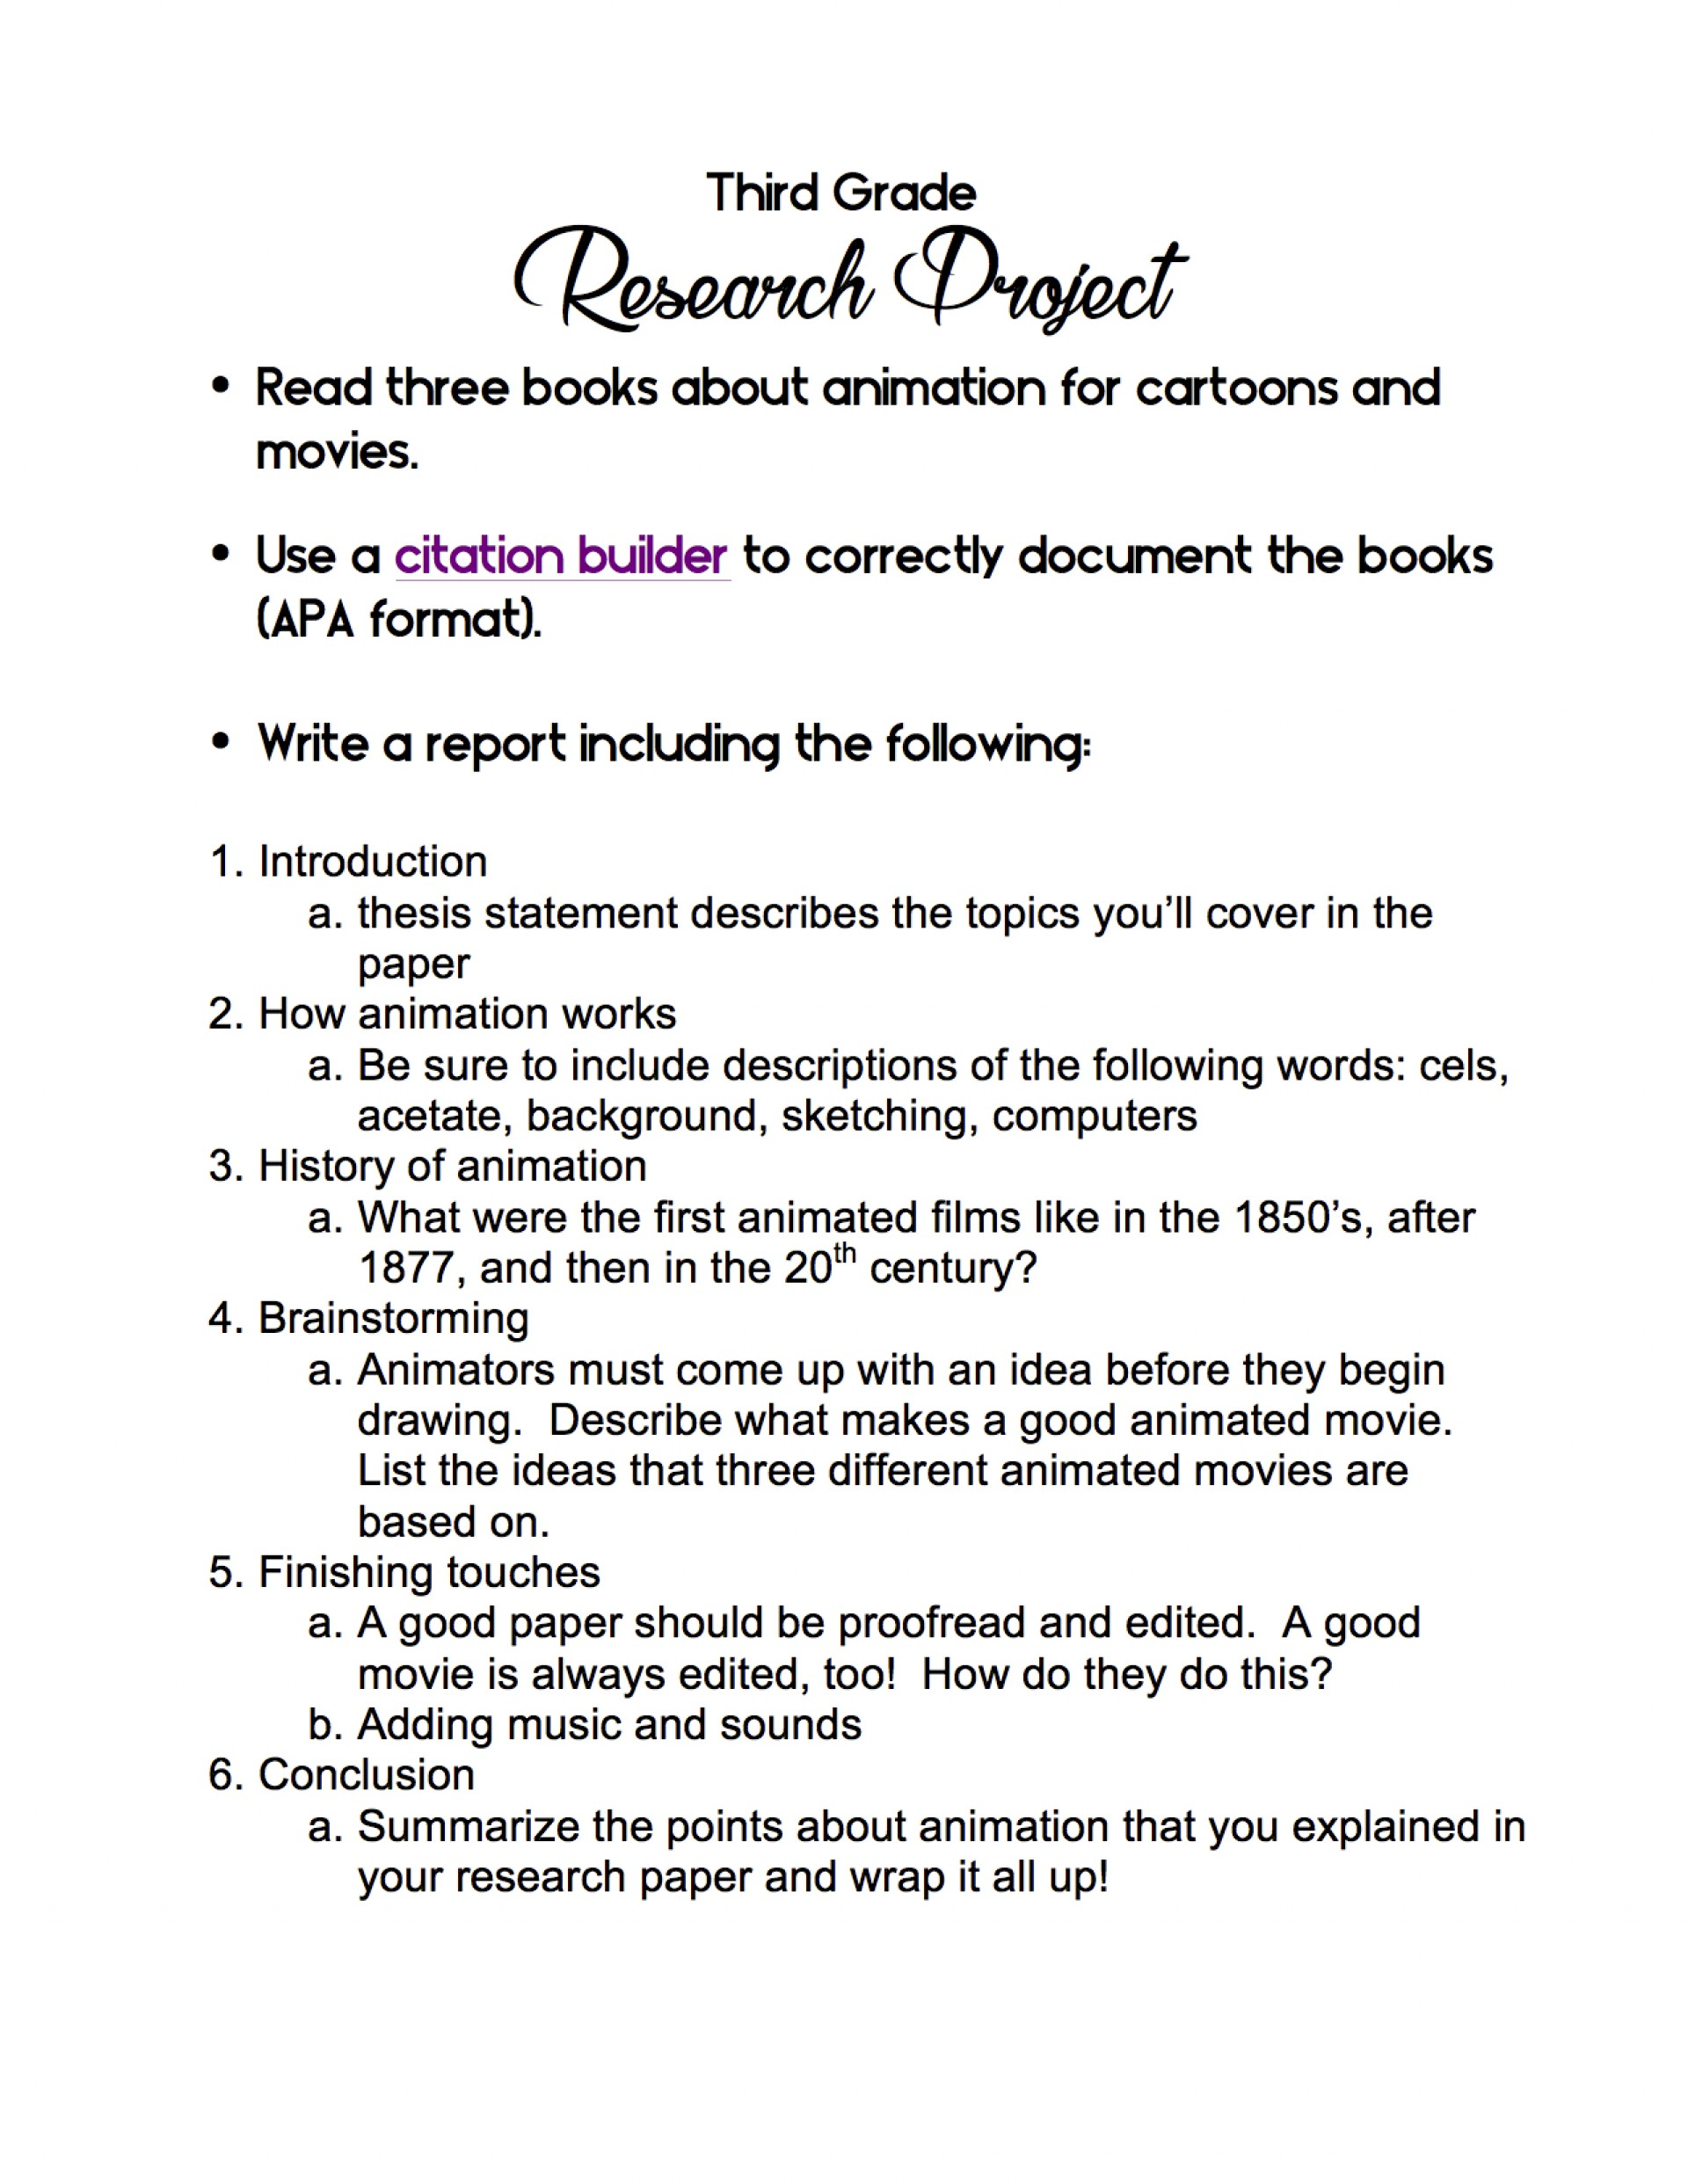 002 Research Paper Cancer Ideas 3rd Grade Shocking Topic Breast 1920